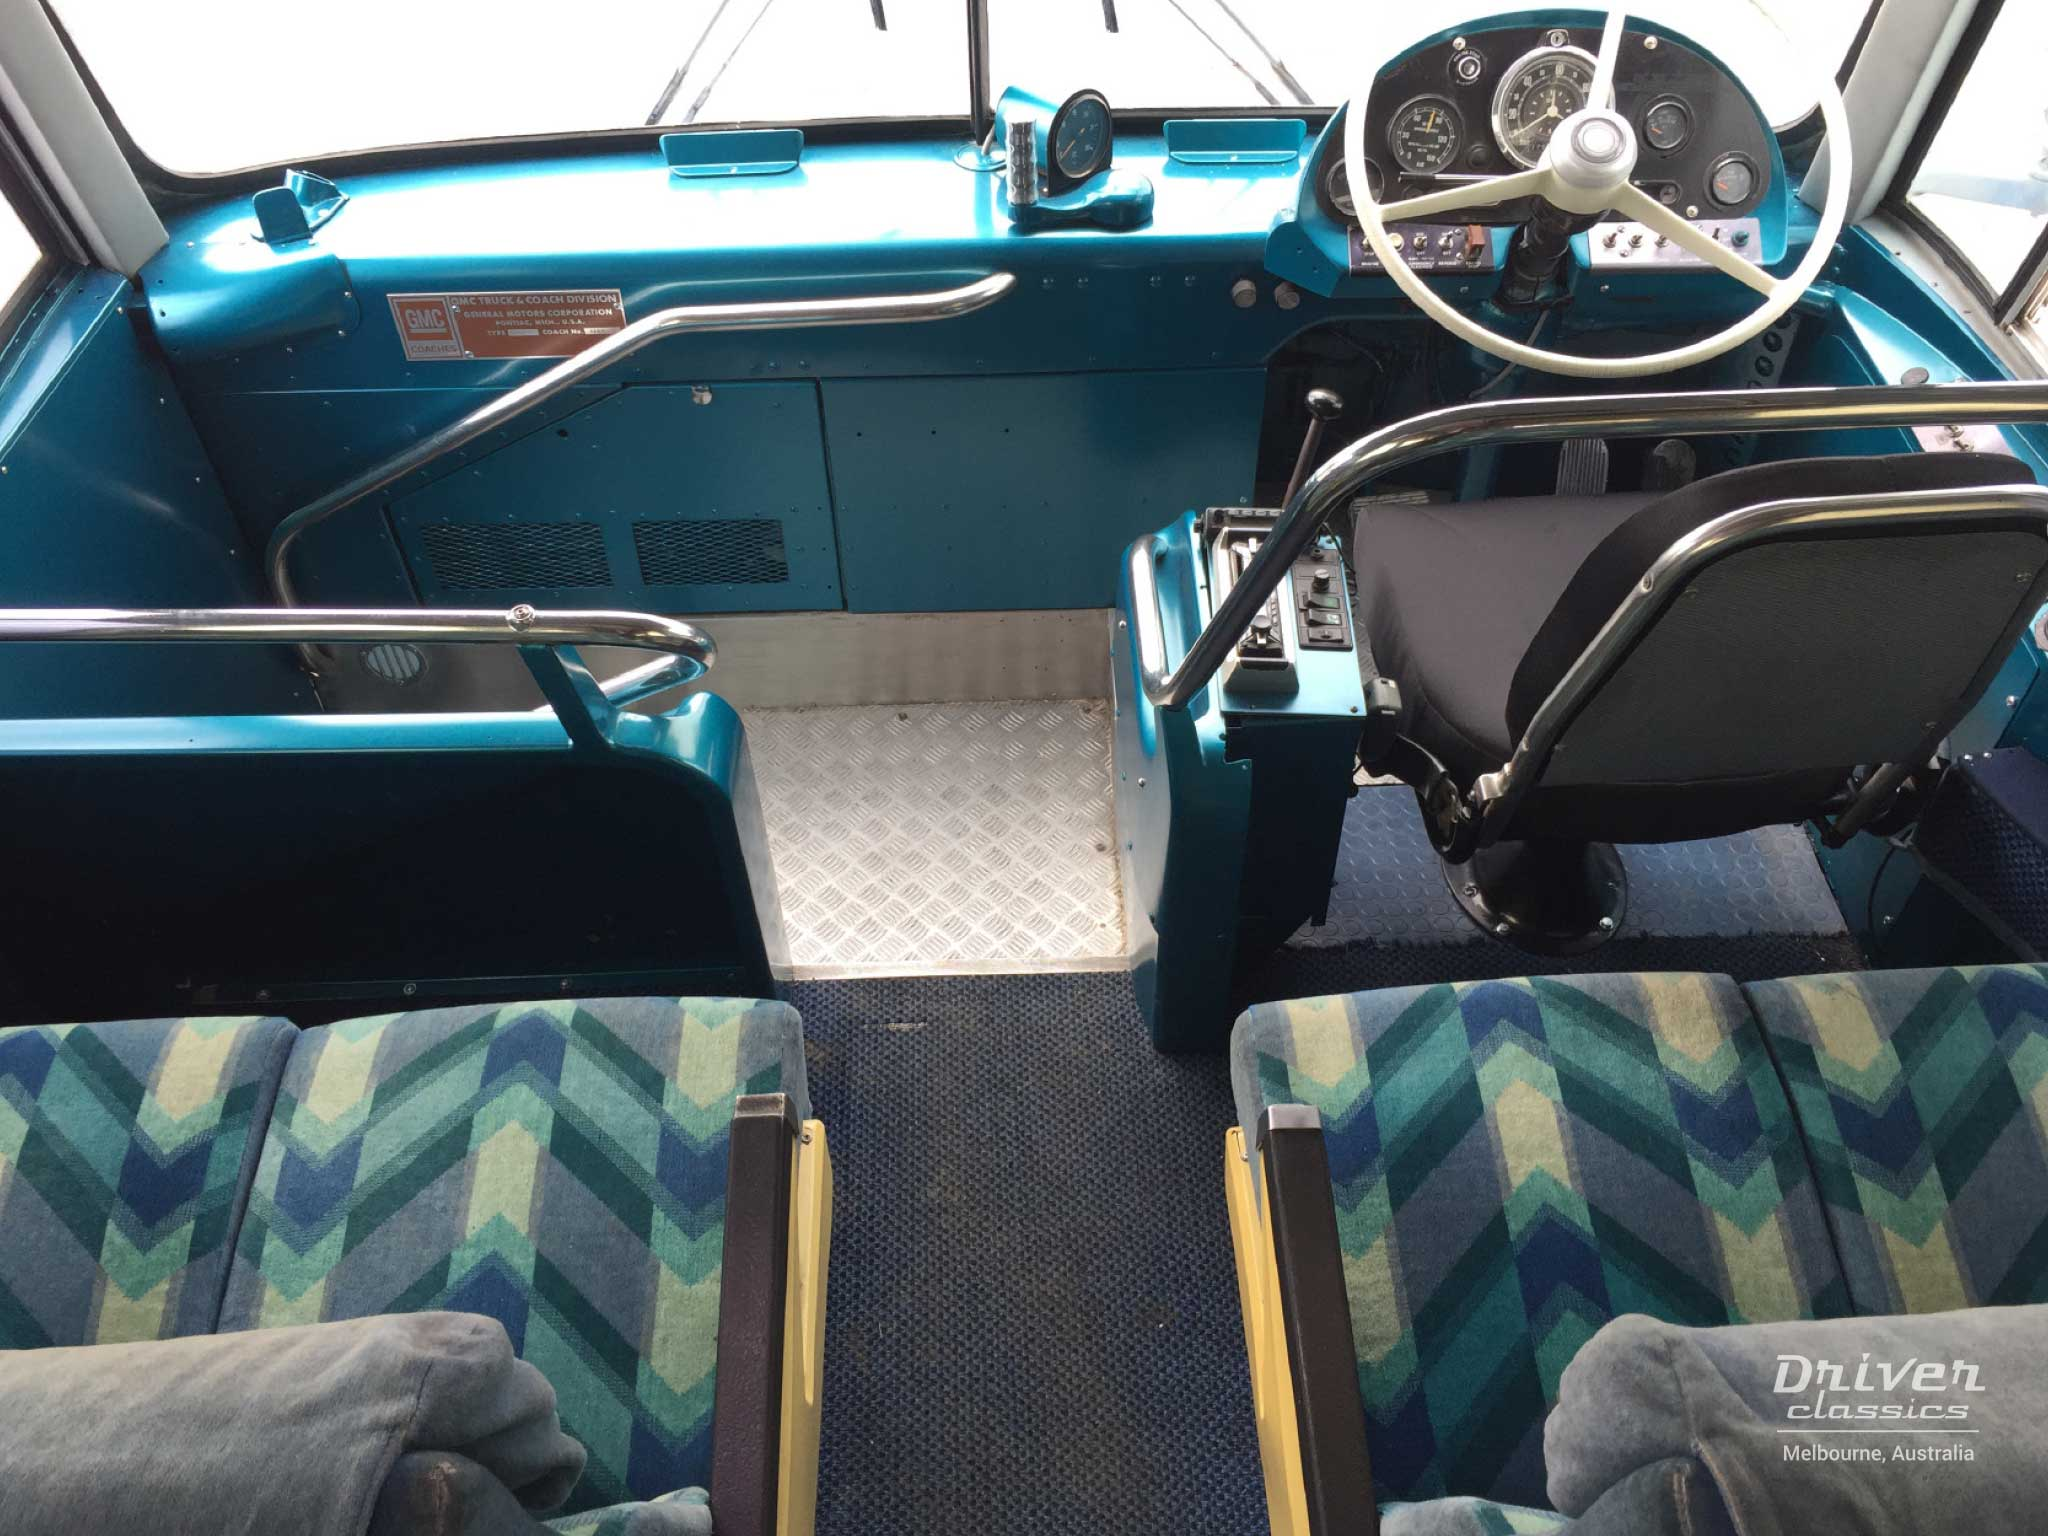 GMC PD 4107 bus dashboard adn front area